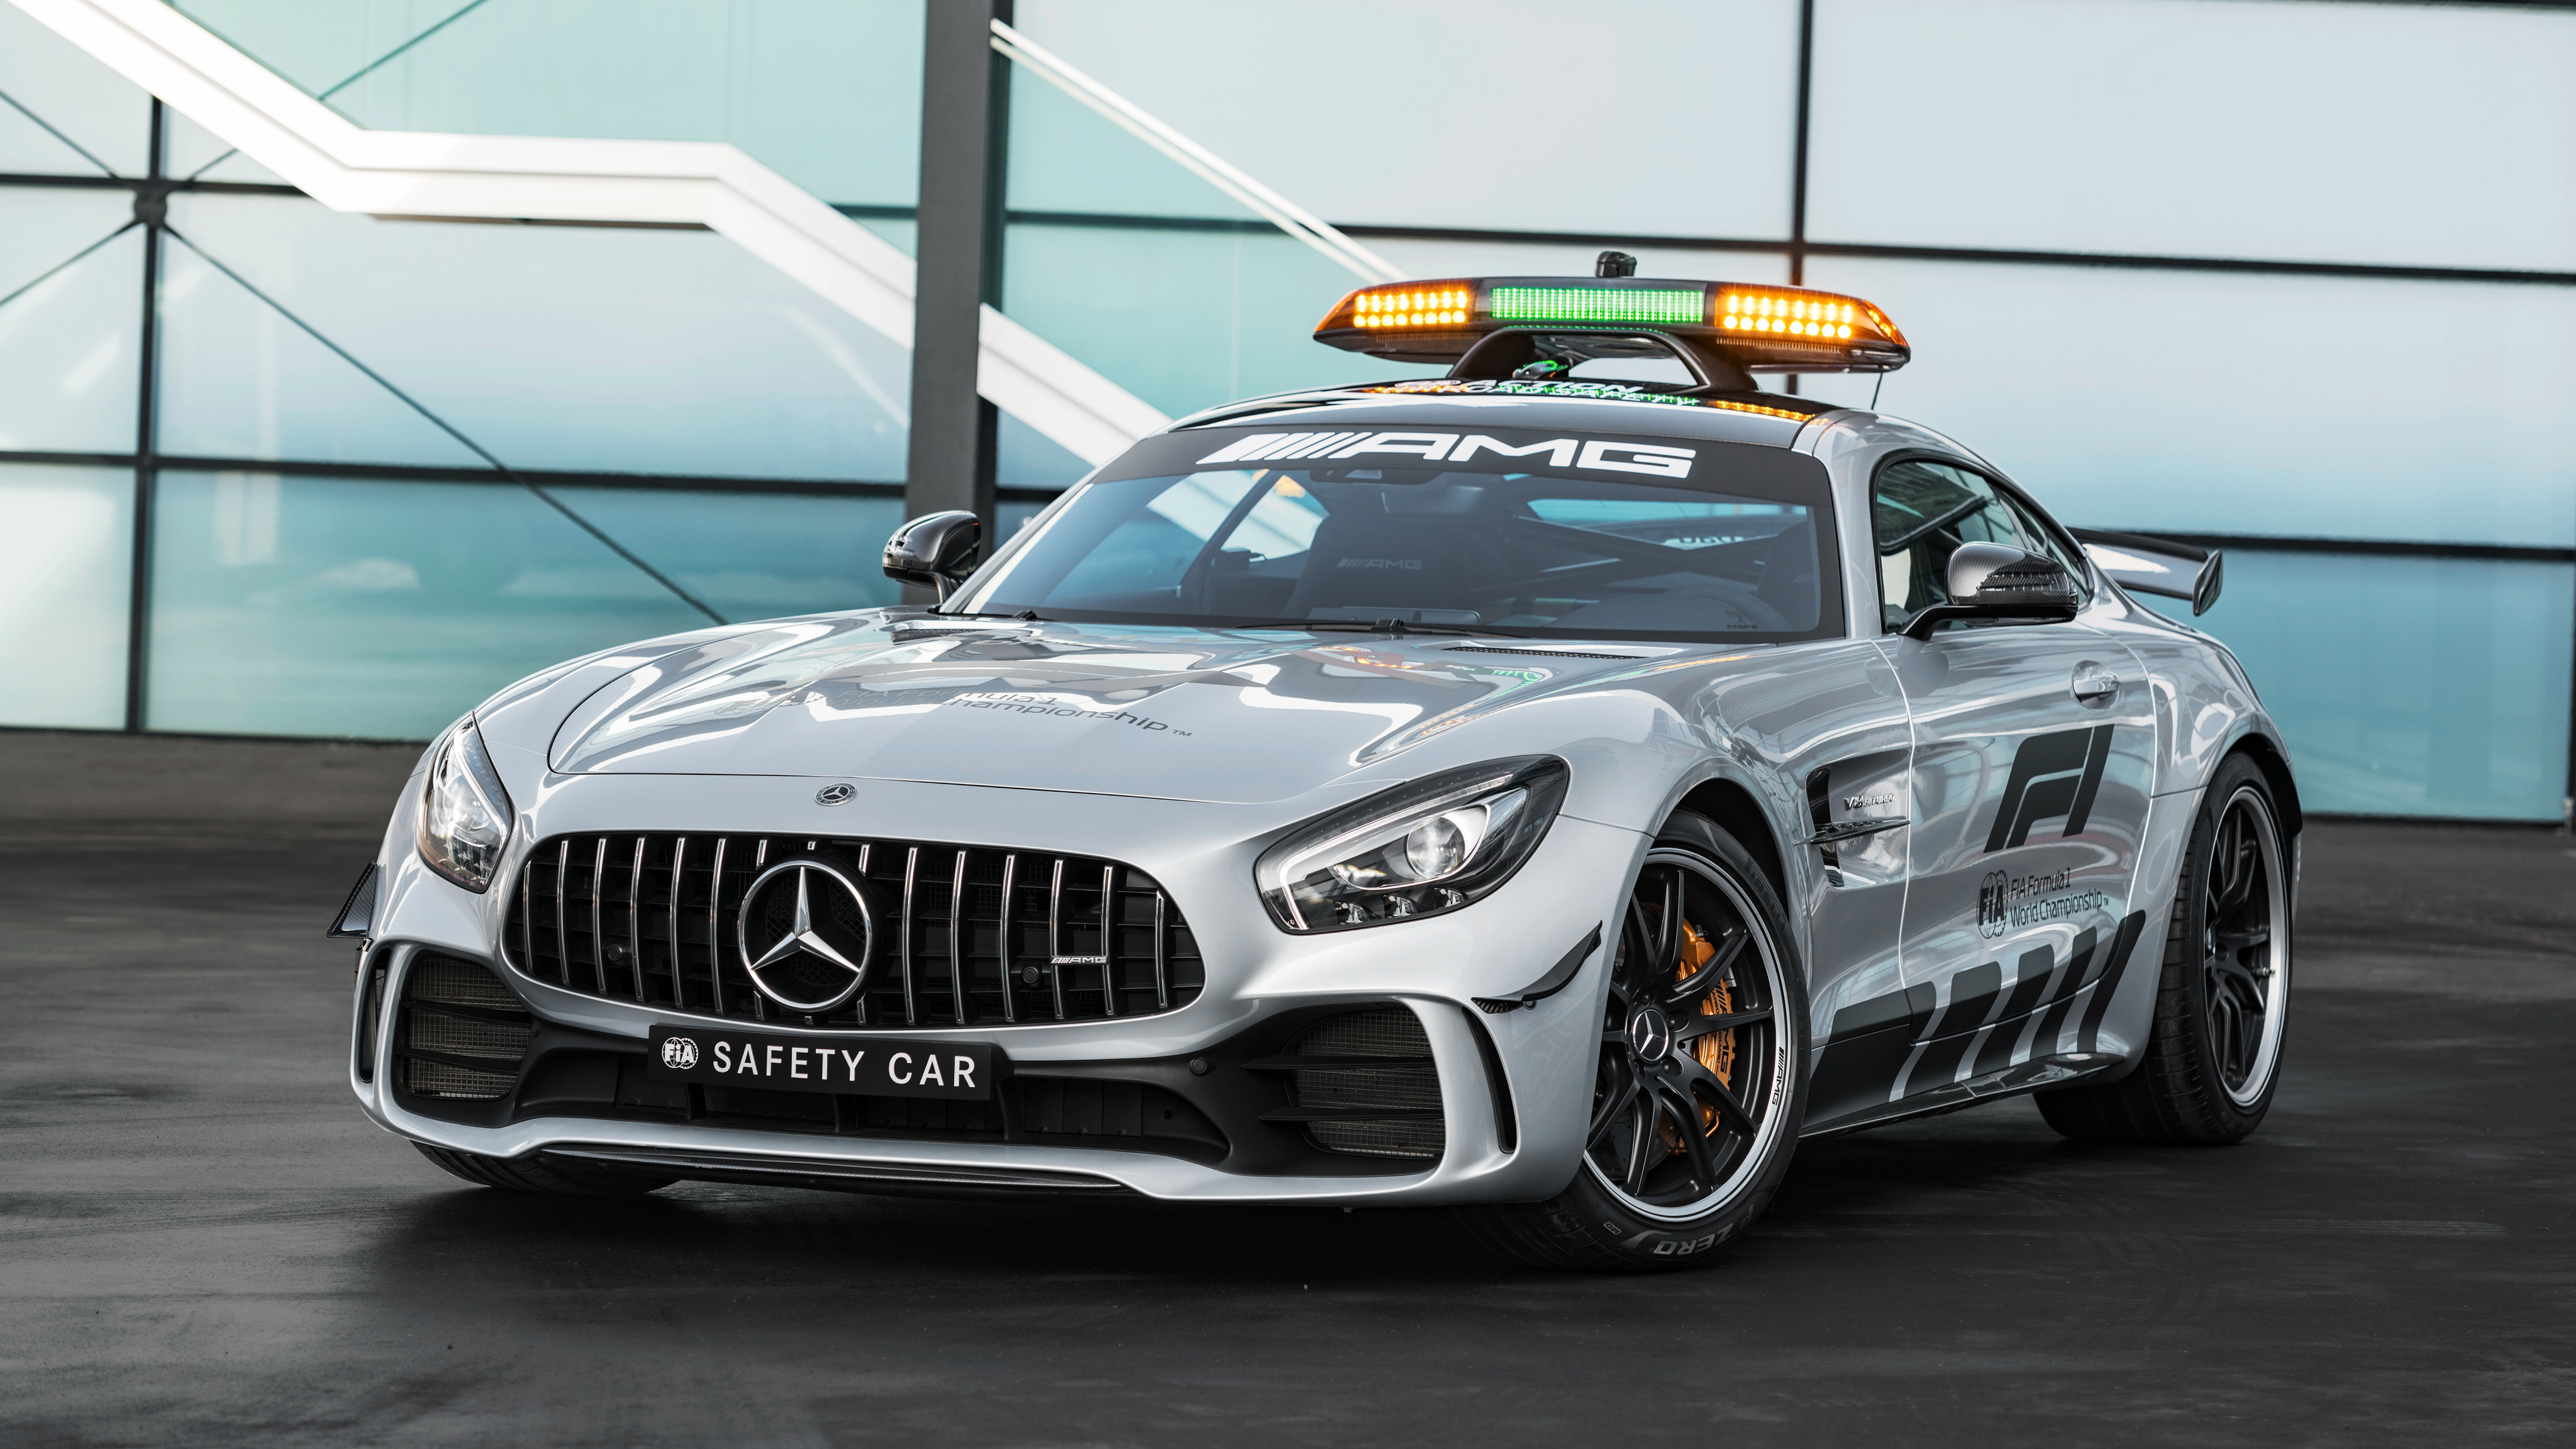 2018 mercedes amg gt r f1 safety car 4k wallpaper hd car wallpapers id 10013. Black Bedroom Furniture Sets. Home Design Ideas